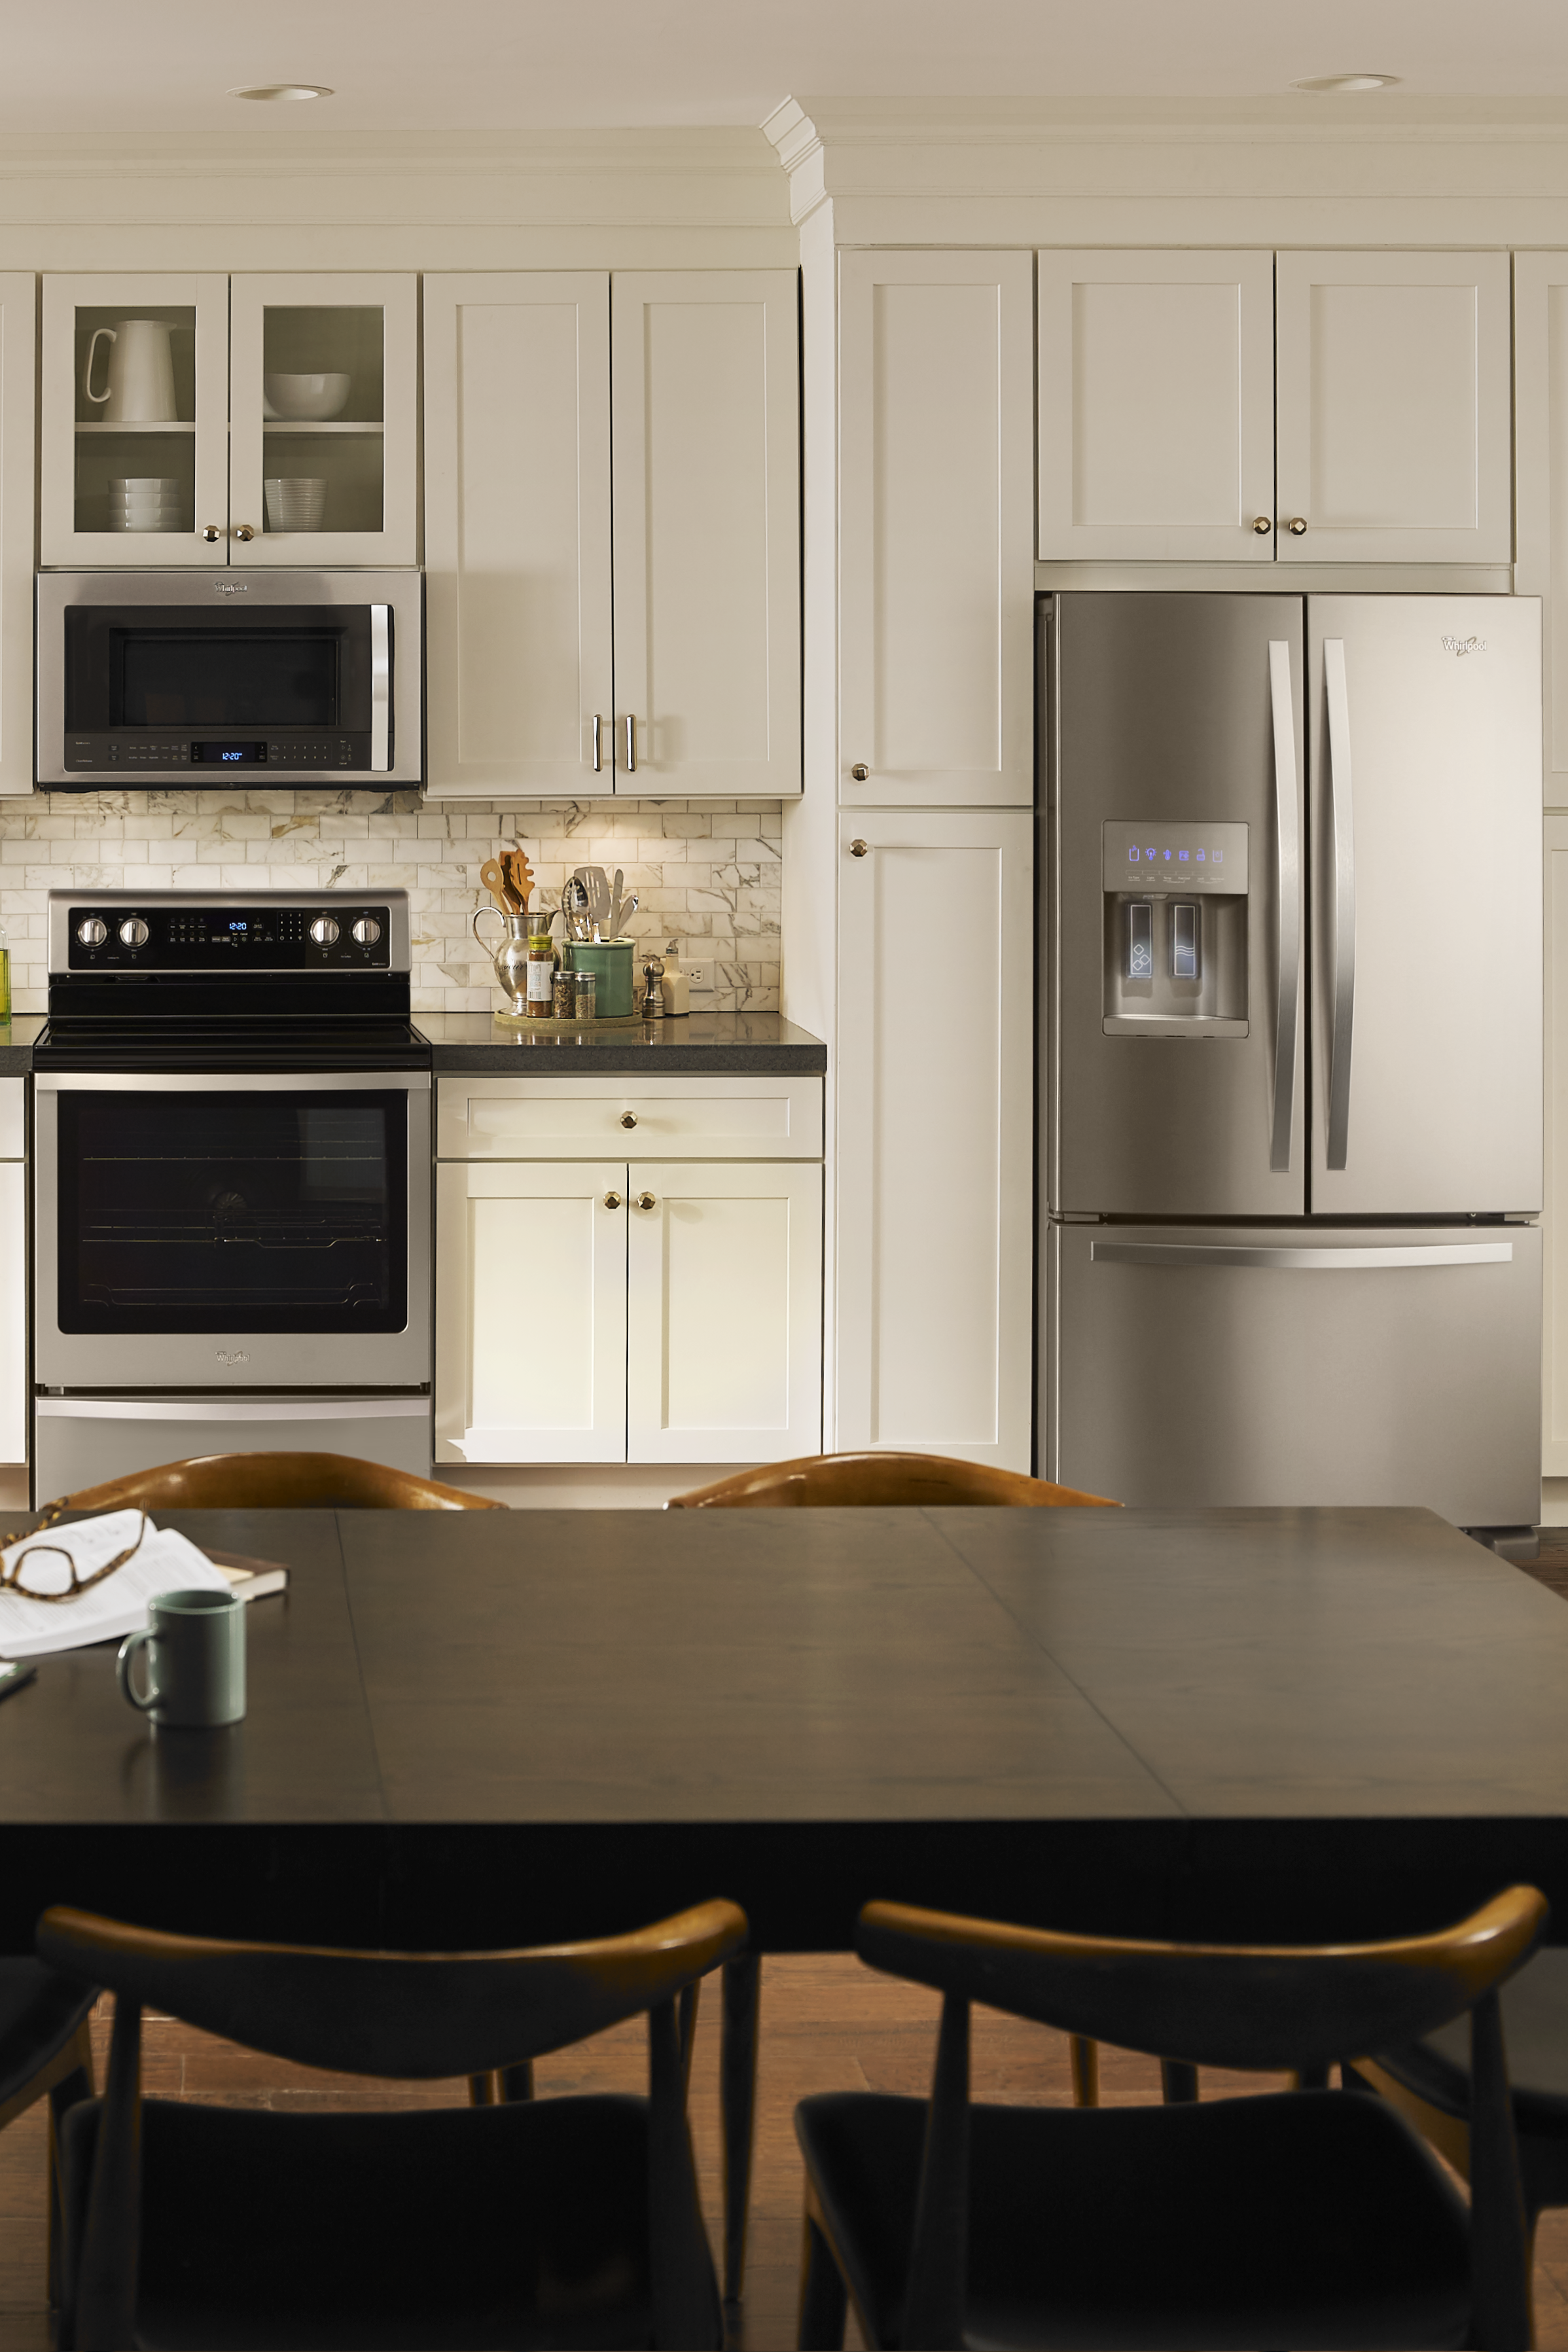 Sleek stainless steel appliances without smudges and